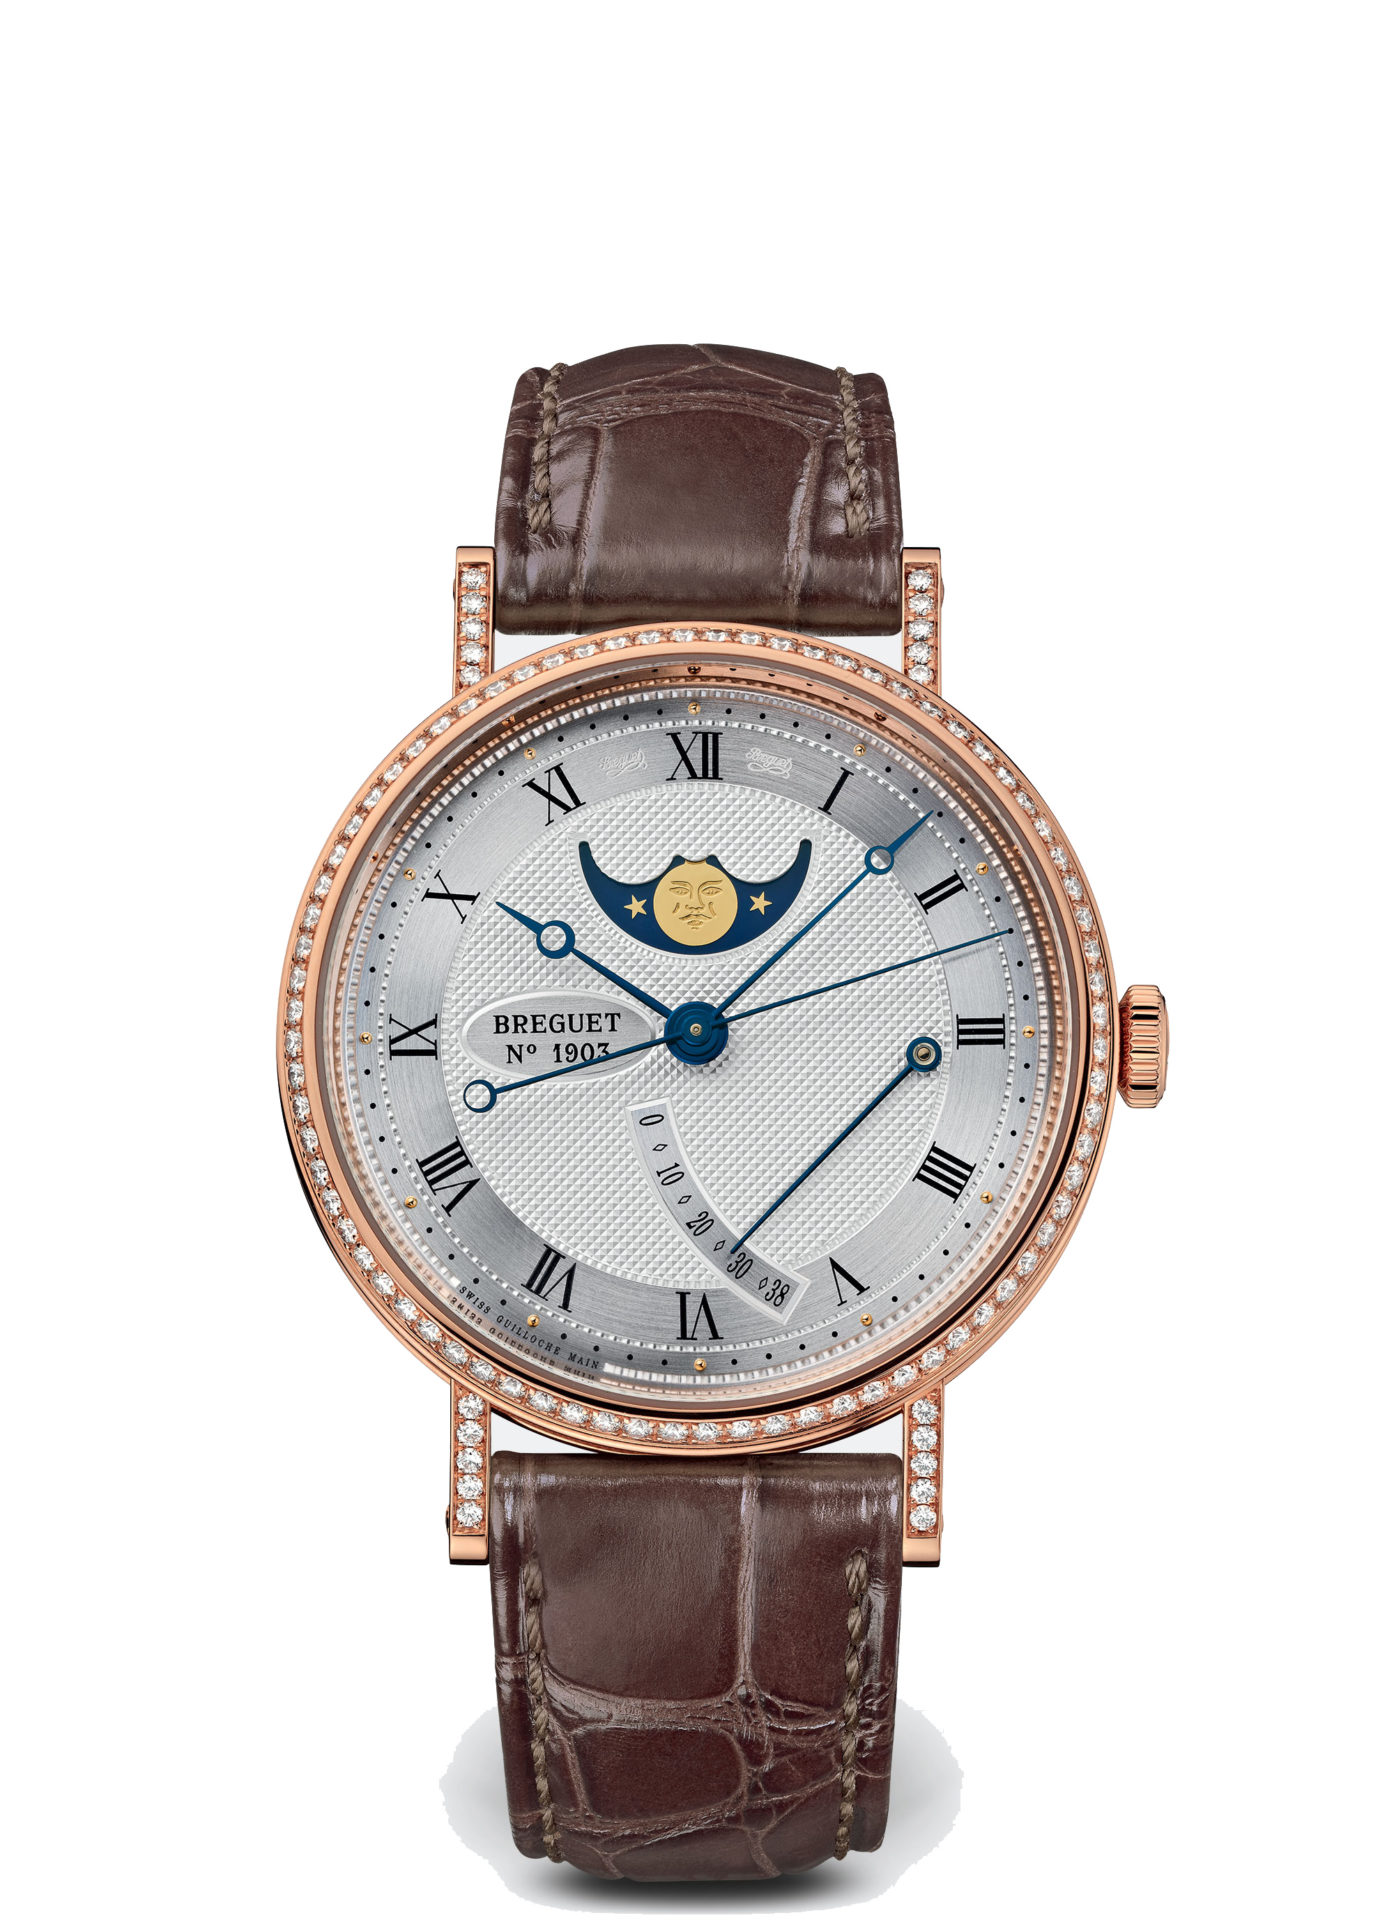 Breguet-Classique-8788-Hall-of-Time-8788br-12-986-dd00-1